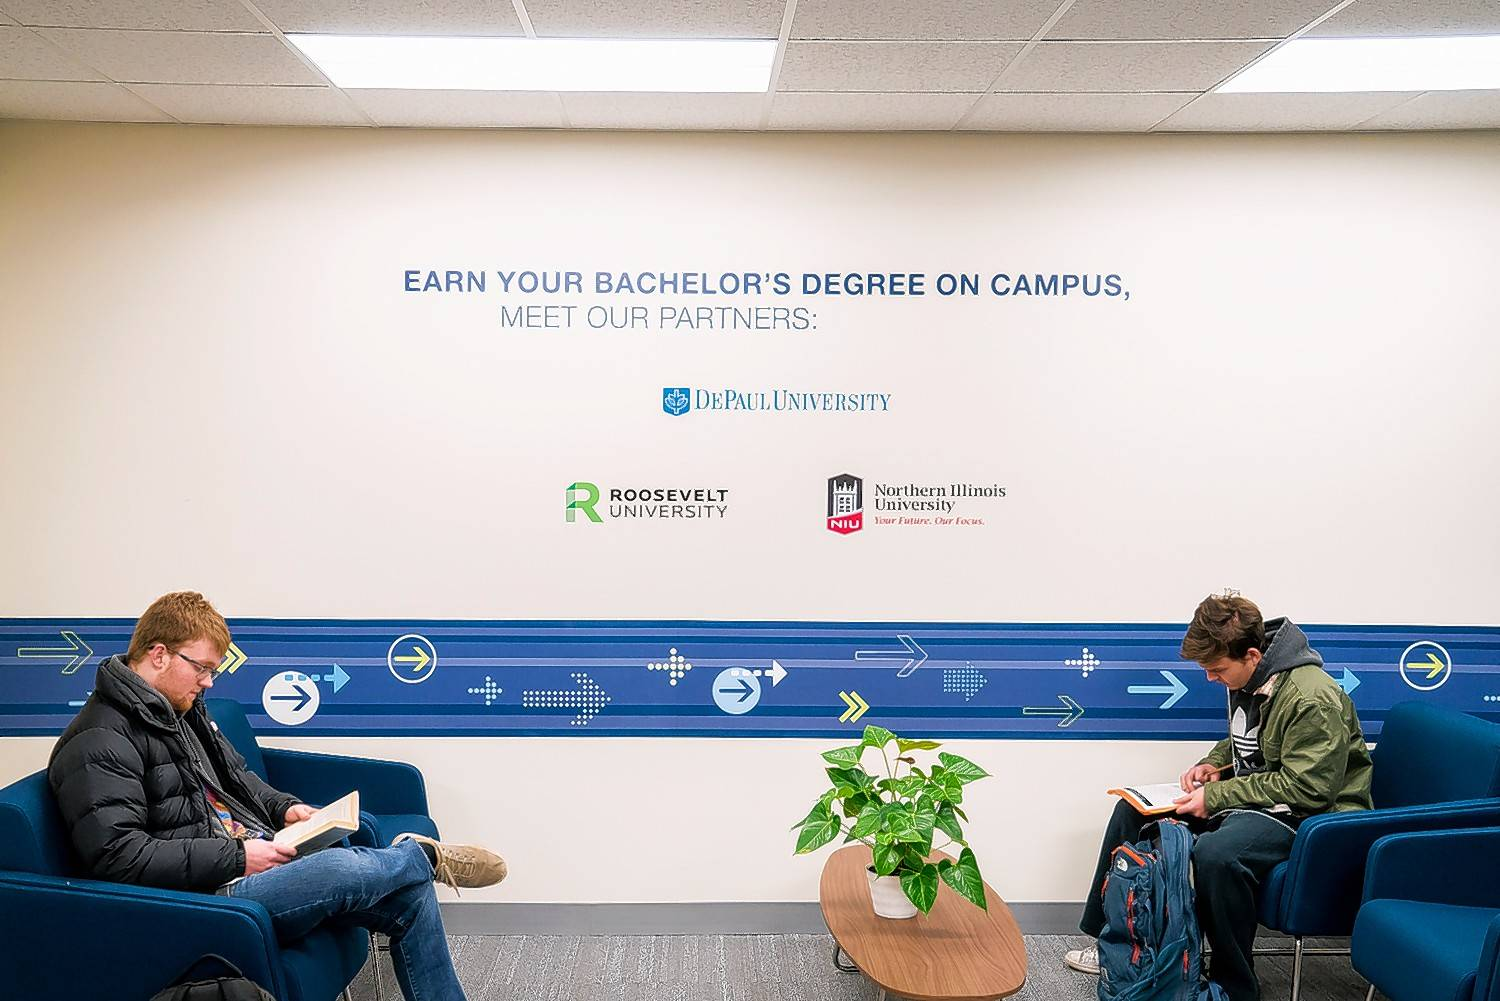 Harper College's new University Center was formed in partnership with three universities to offer bachelor's degrees in six disciplines.